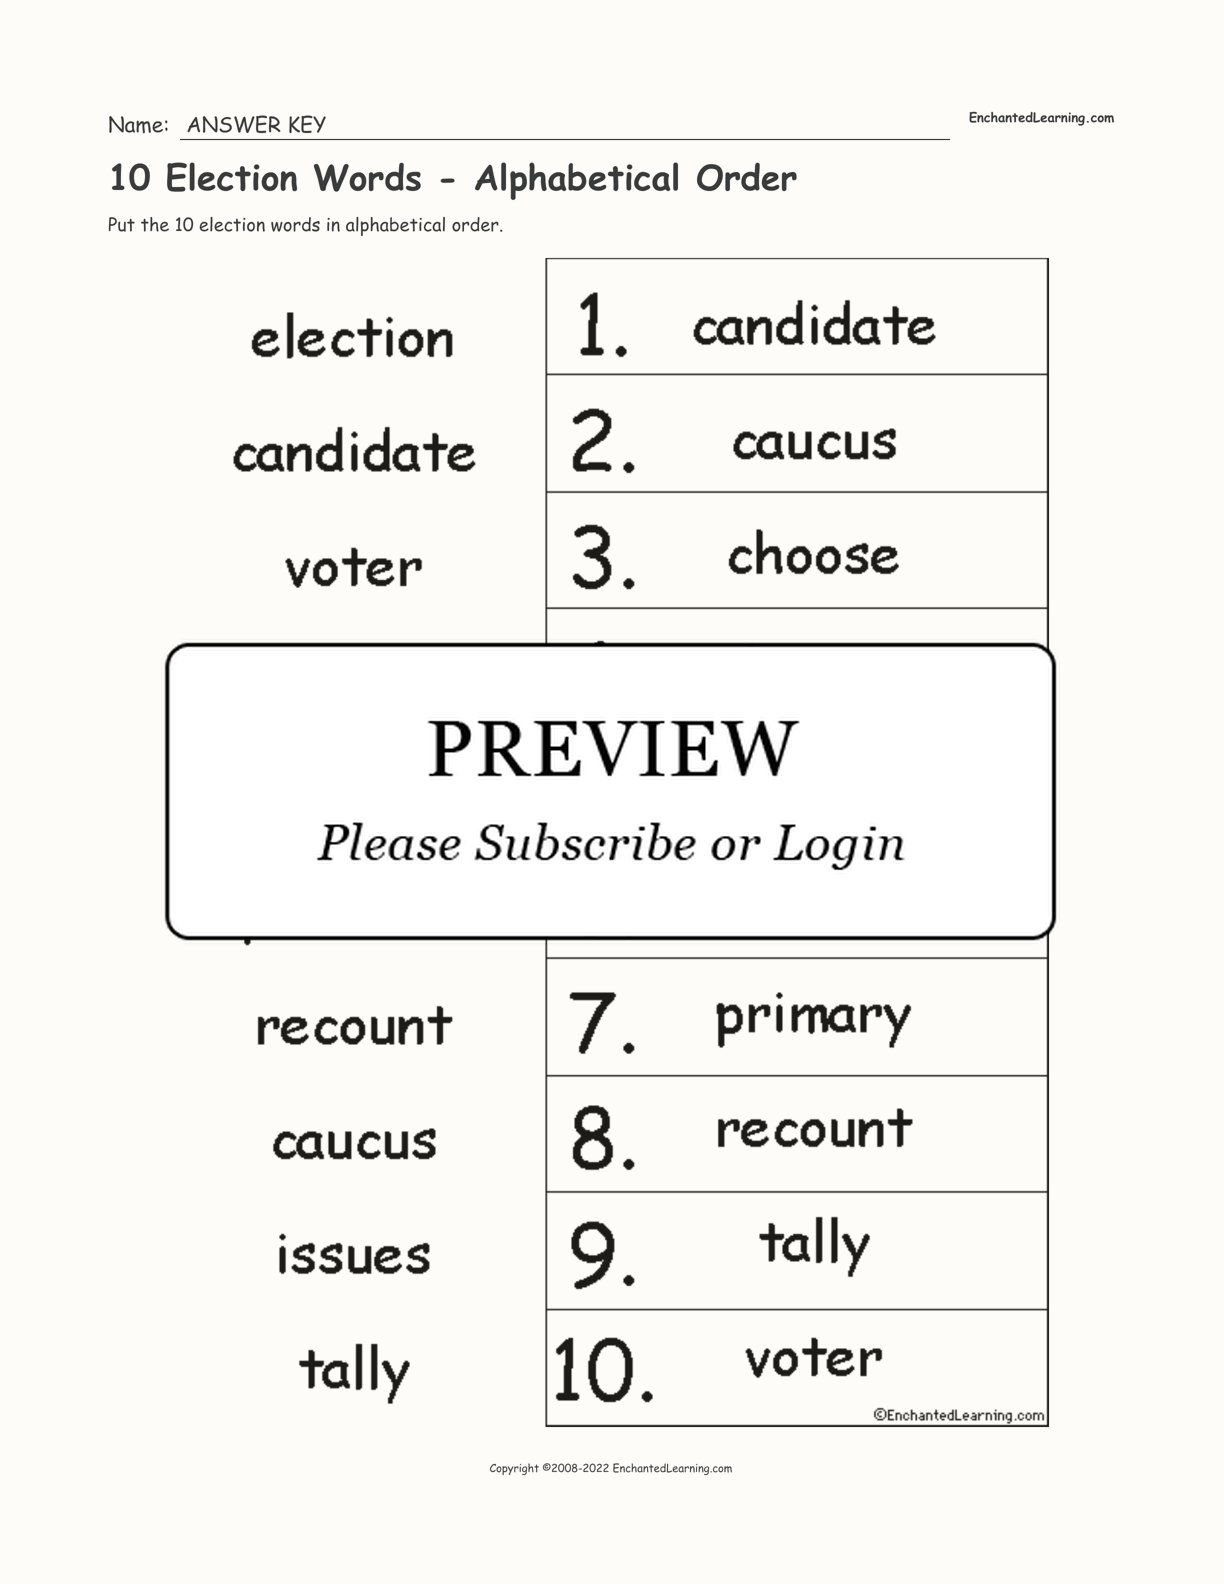 10 Election Words - Alphabetical Order interactive worksheet page 2